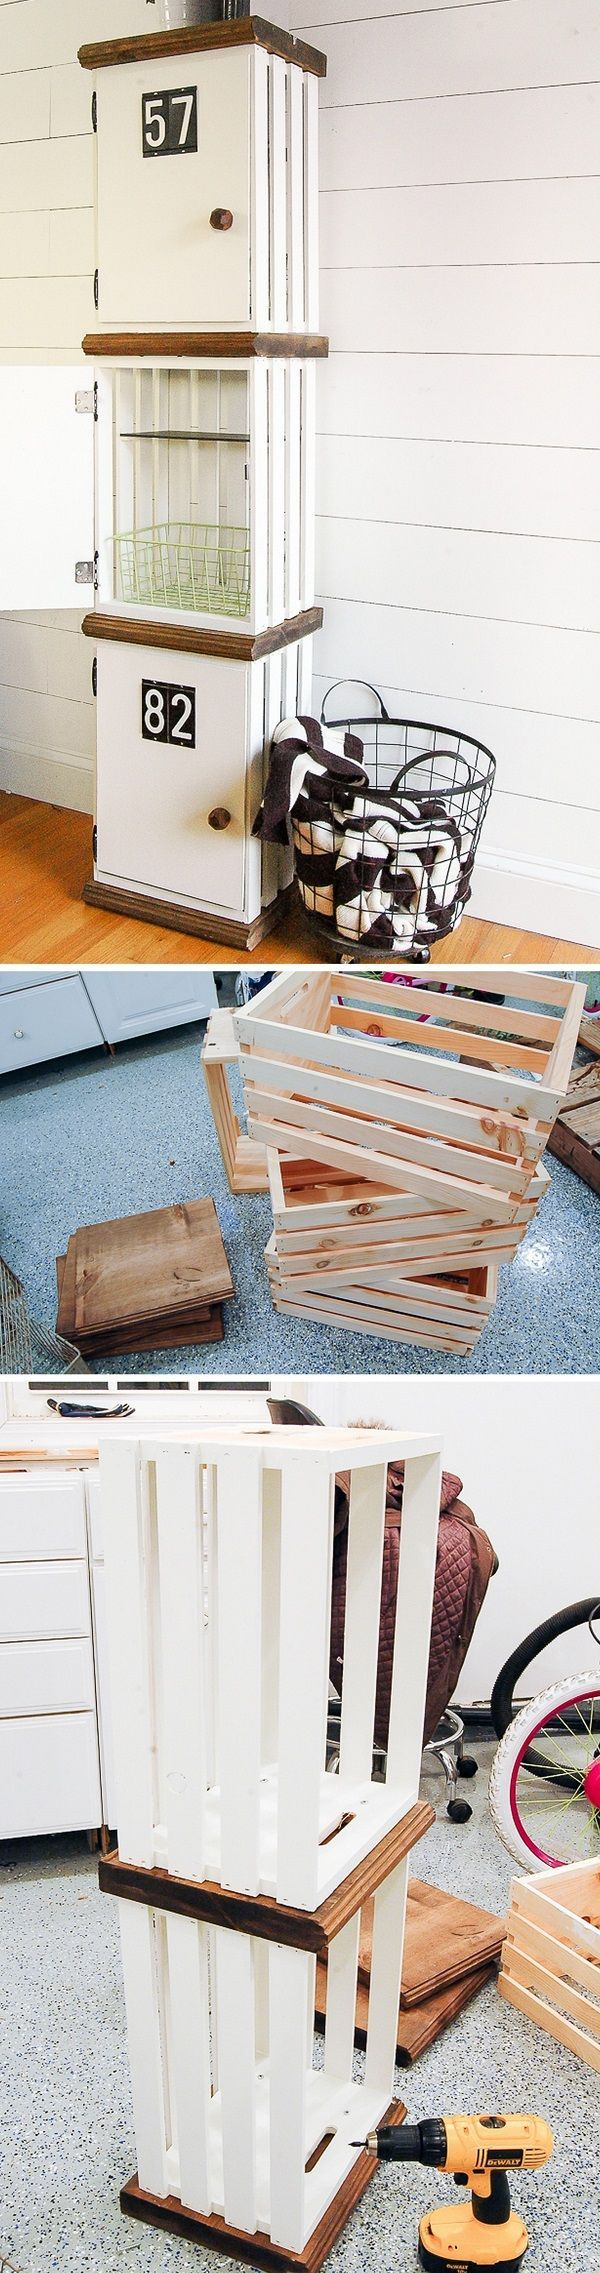 Check out how to build a #DIY locker from wood crates #HomeDecorIdeas @istandarddesign